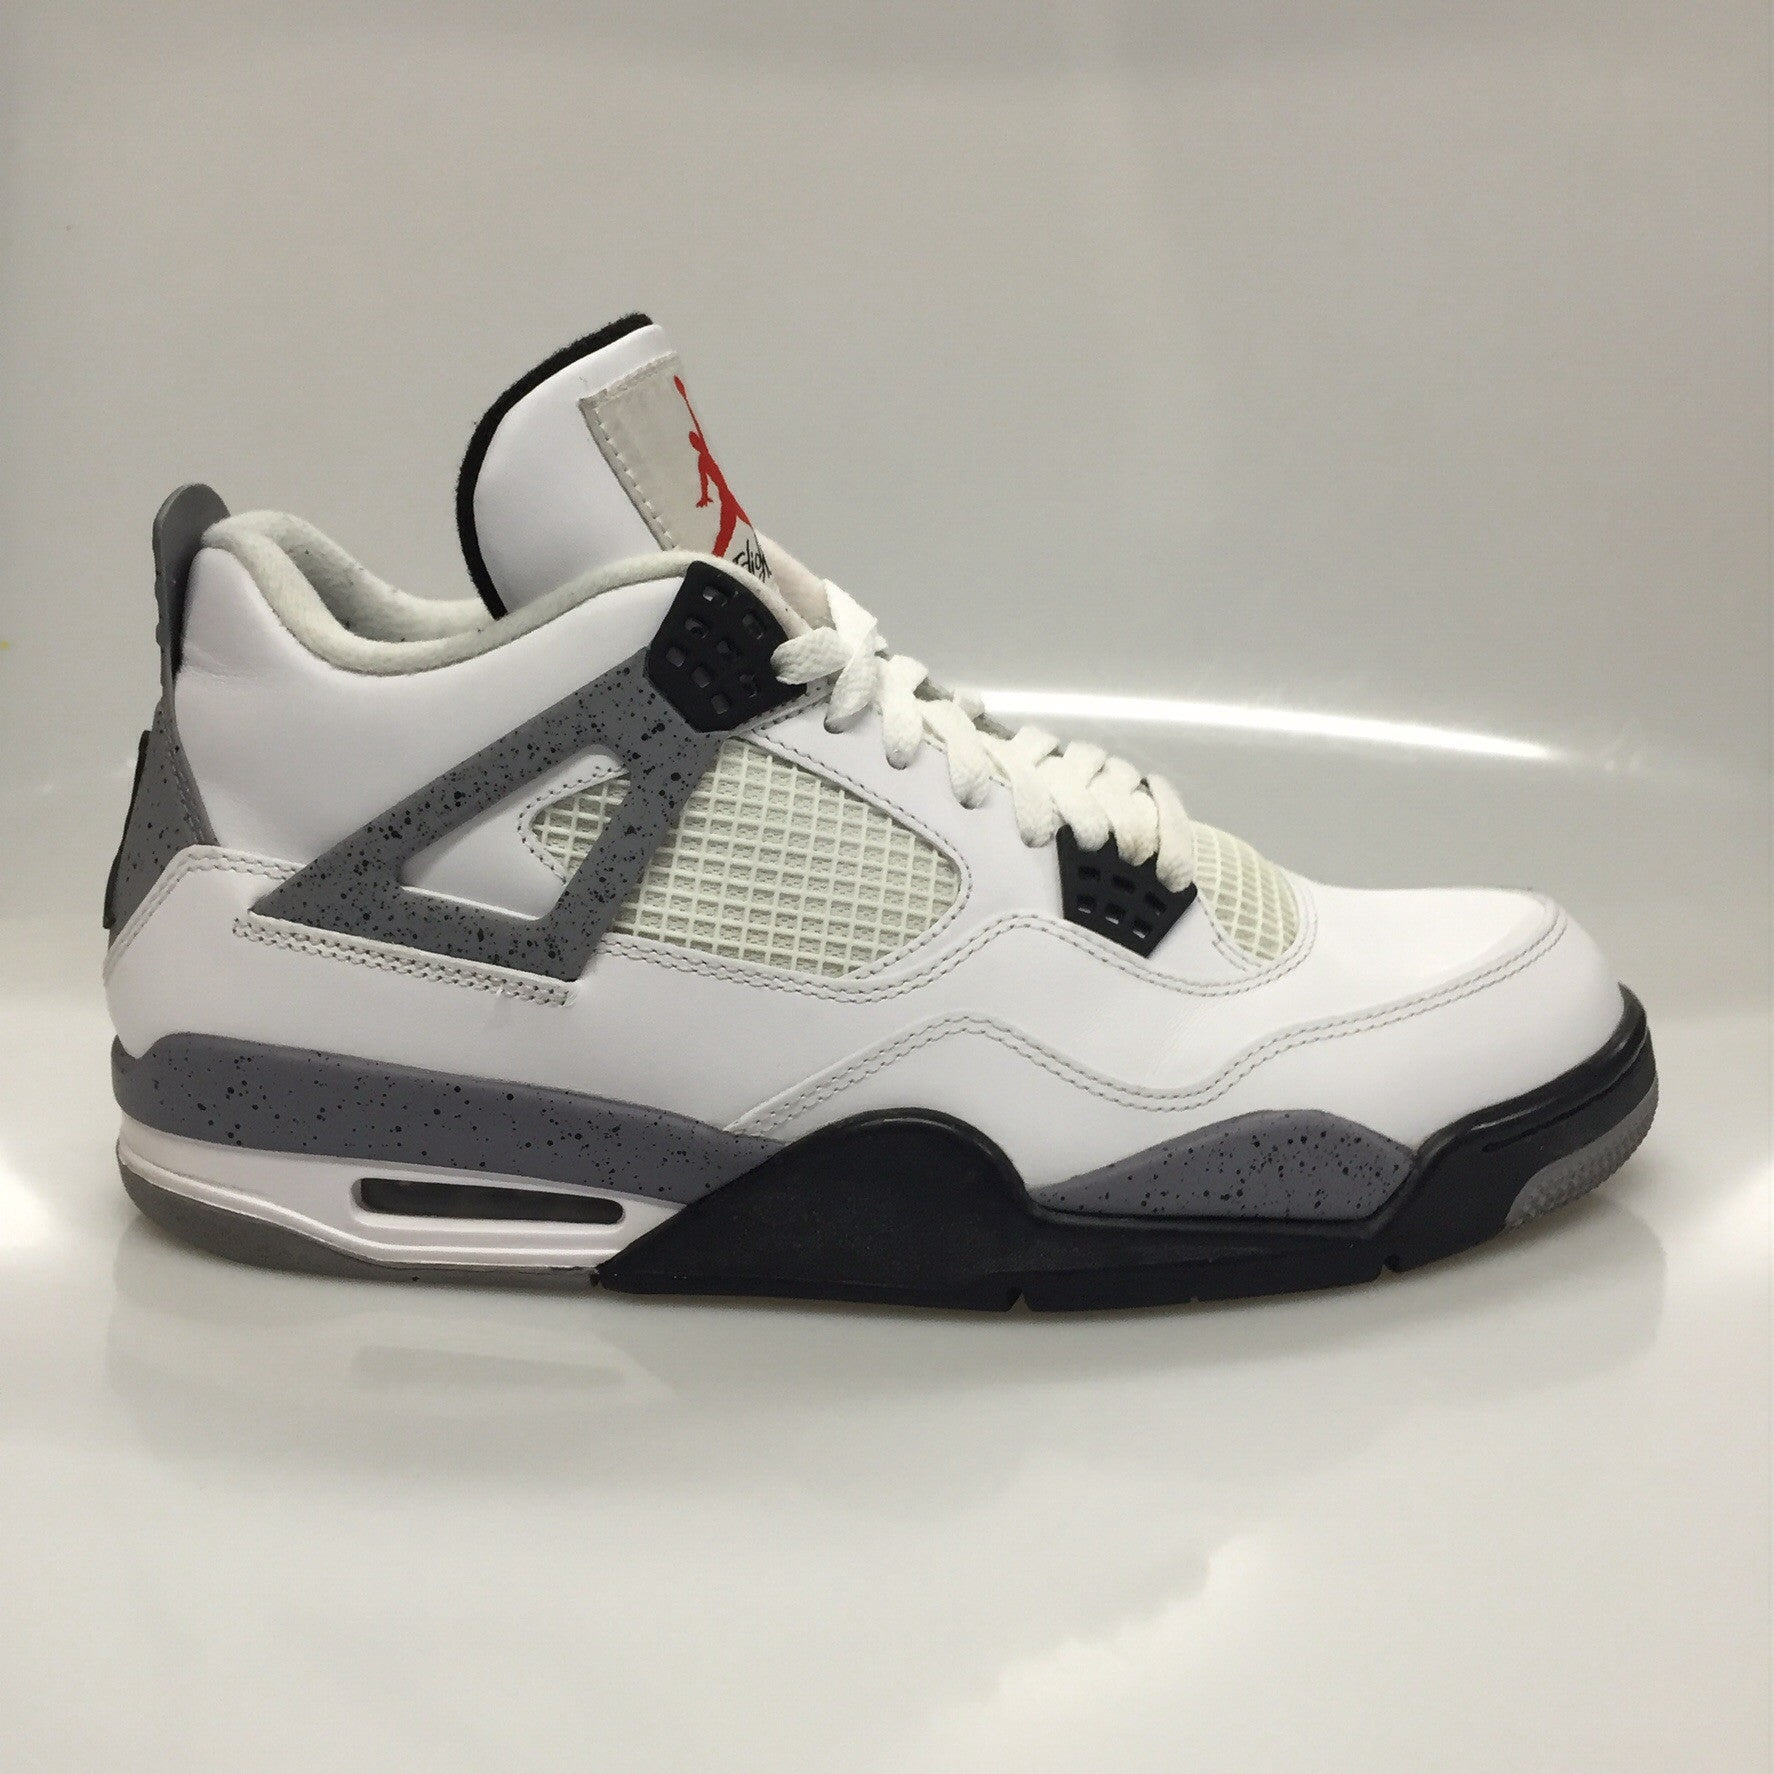 "Air Jordan 4 2012 ""White Cement"" Size 10.5 Pre Owned"